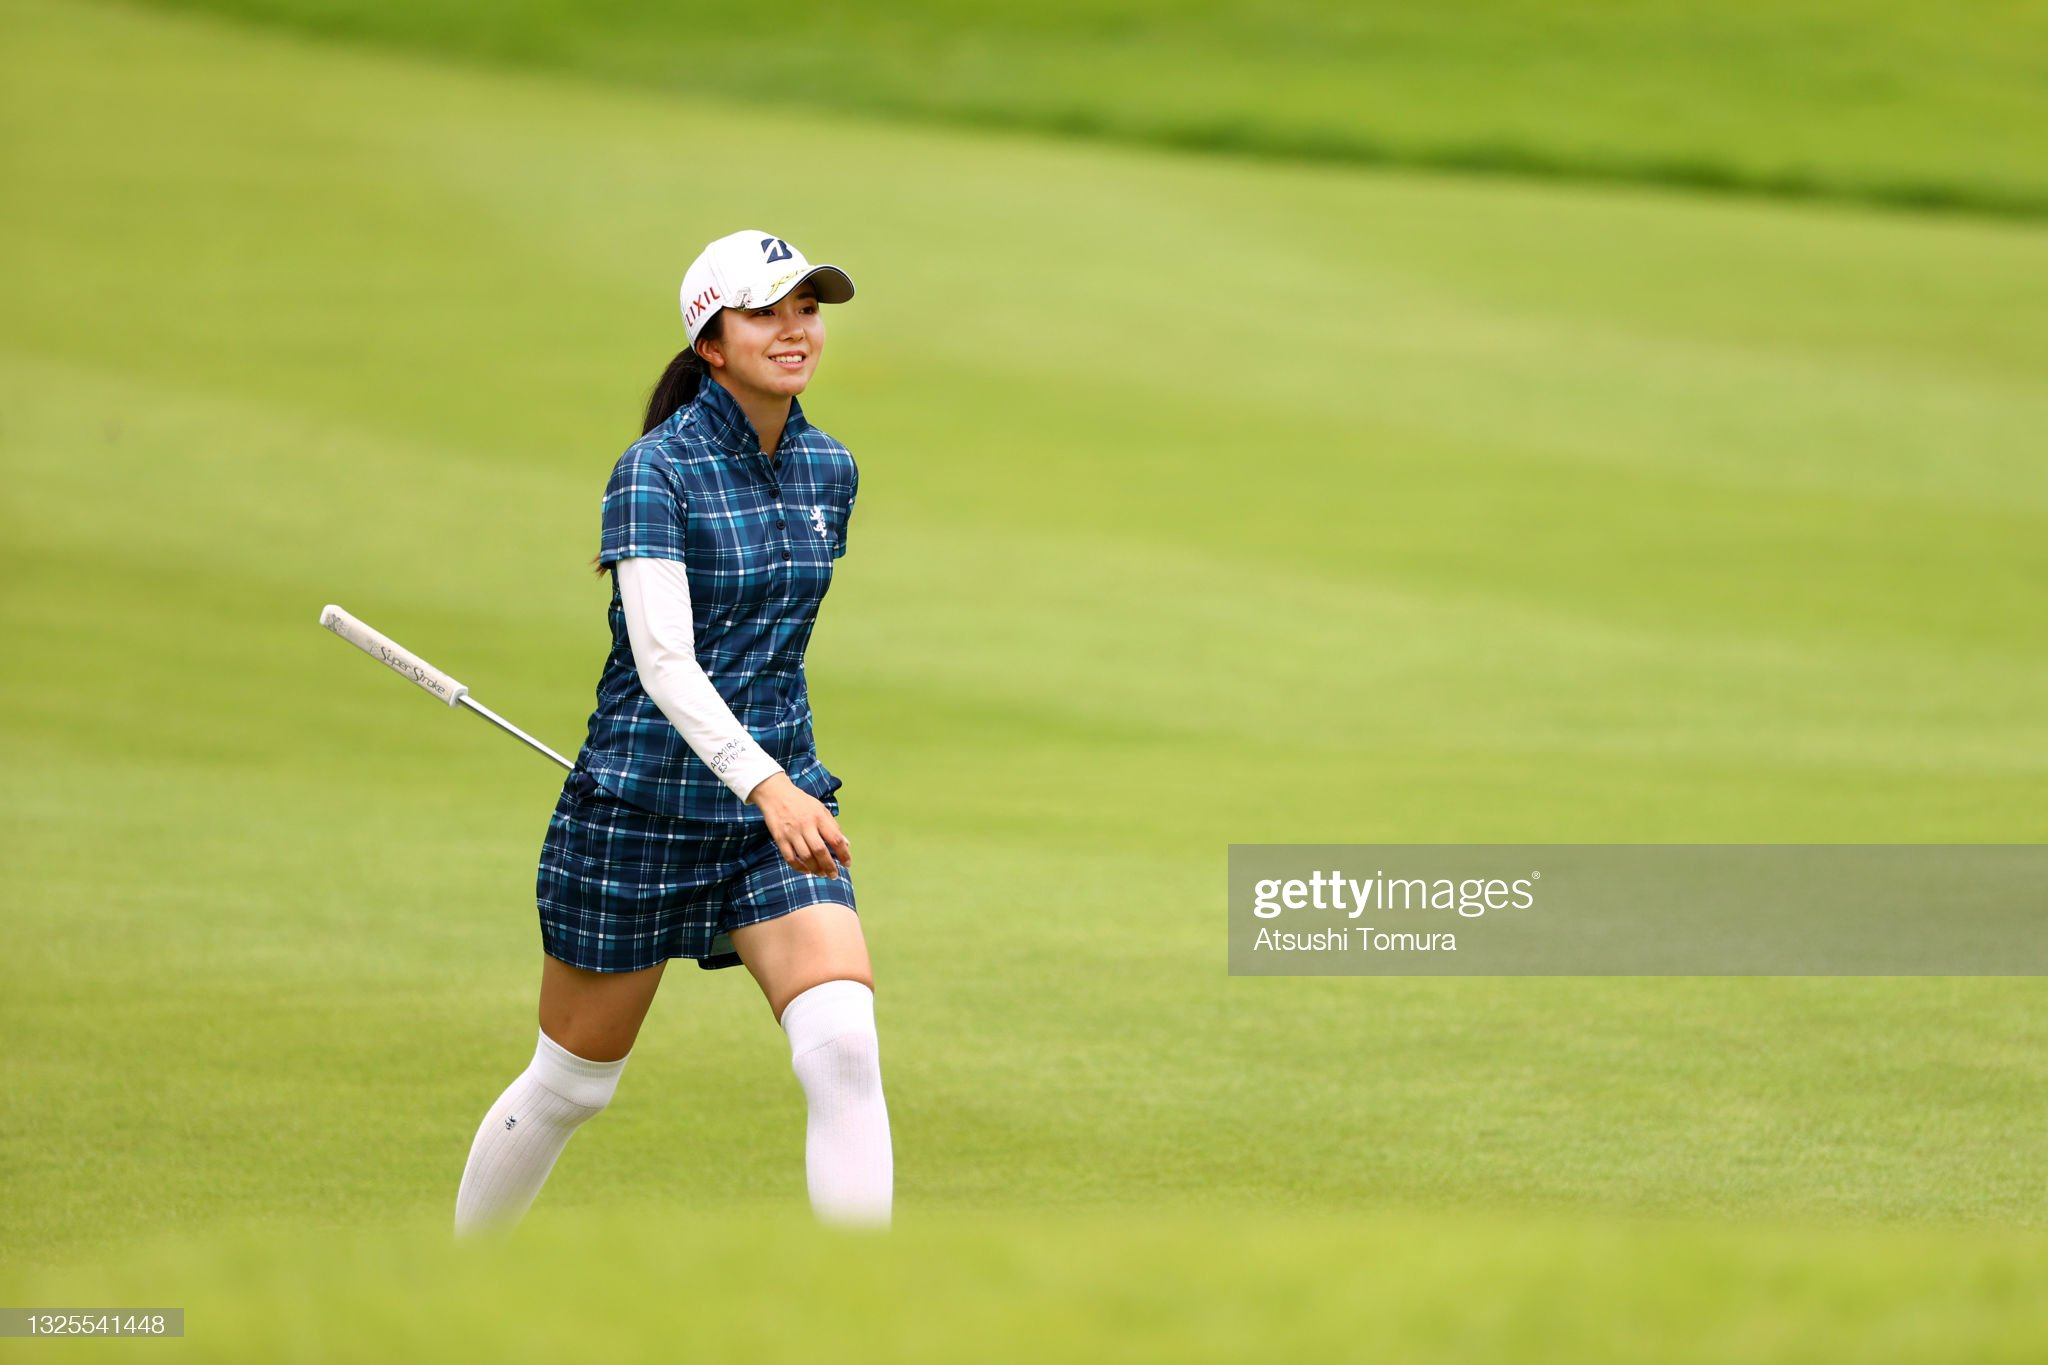 https://media.gettyimages.com/photos/kotone-hori-of-japan-smiles-on-the-8th-hole-during-the-third-round-of-picture-id1325541448?s=2048x2048